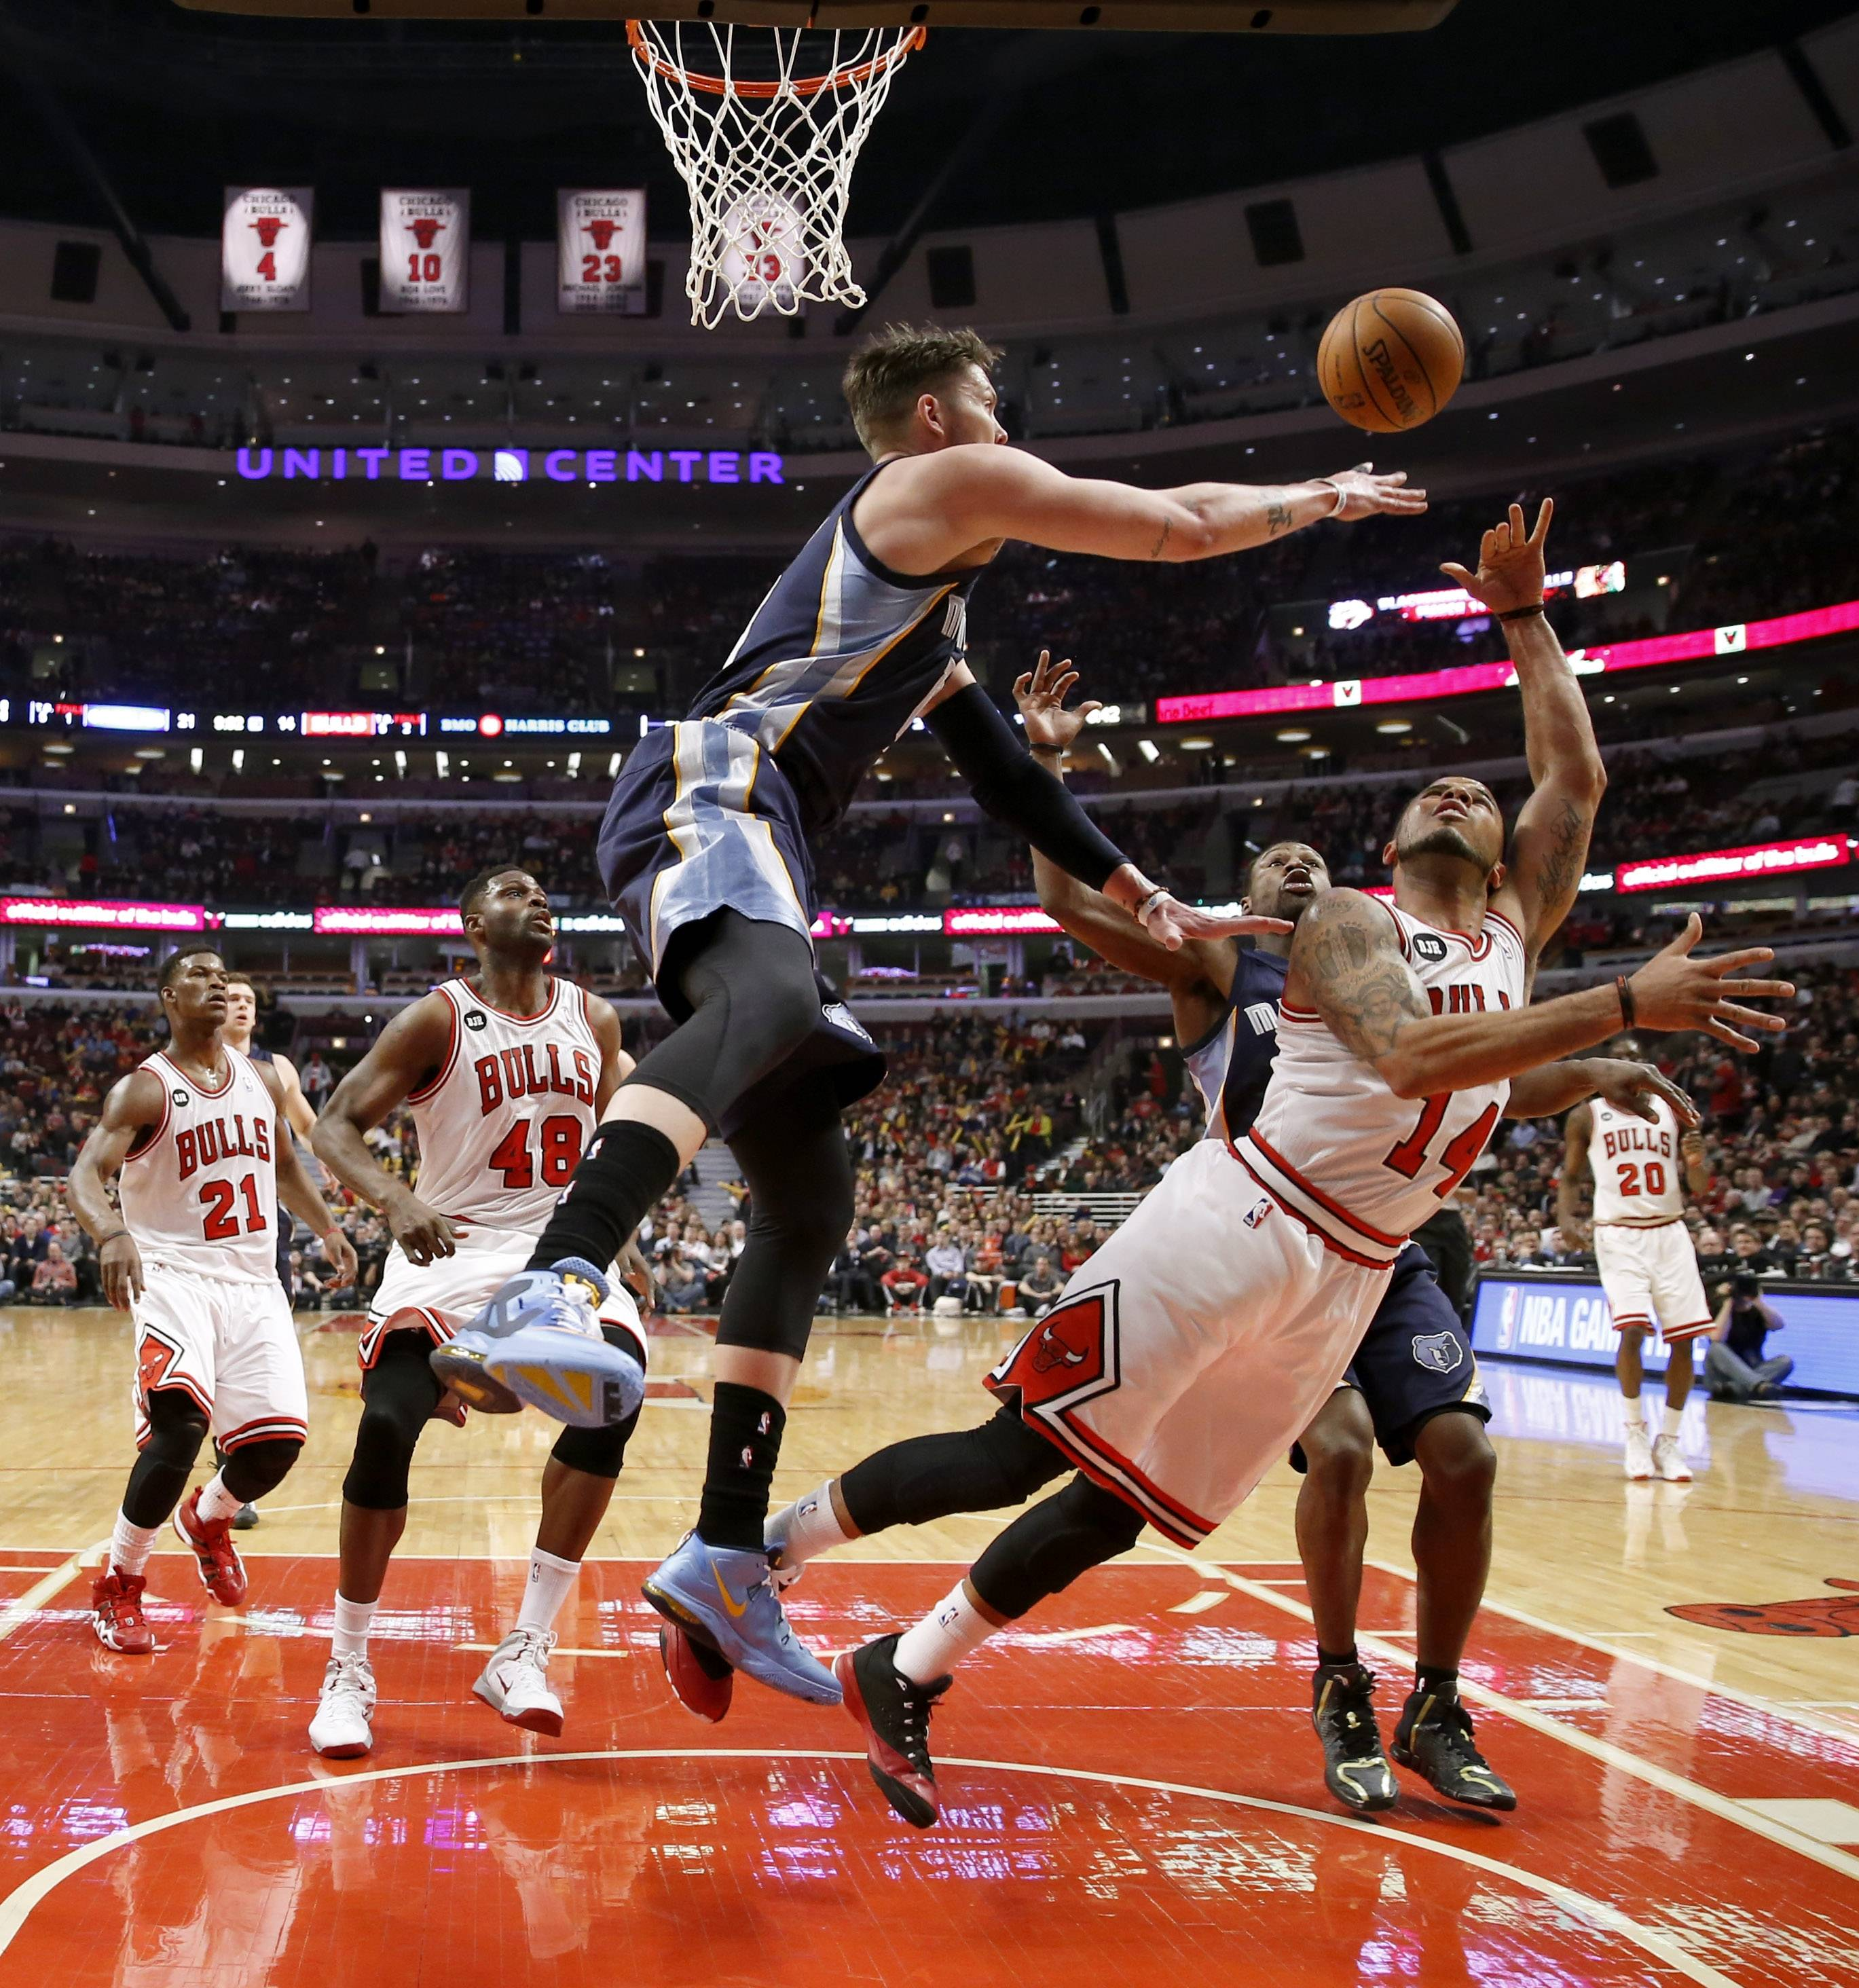 The Grizzlies' Mike Miller, front left, blocks the shot of Bulls guard D.J. Augustin as Jimmy Butler and Nazr Mohammed watch Friday at the United Center.